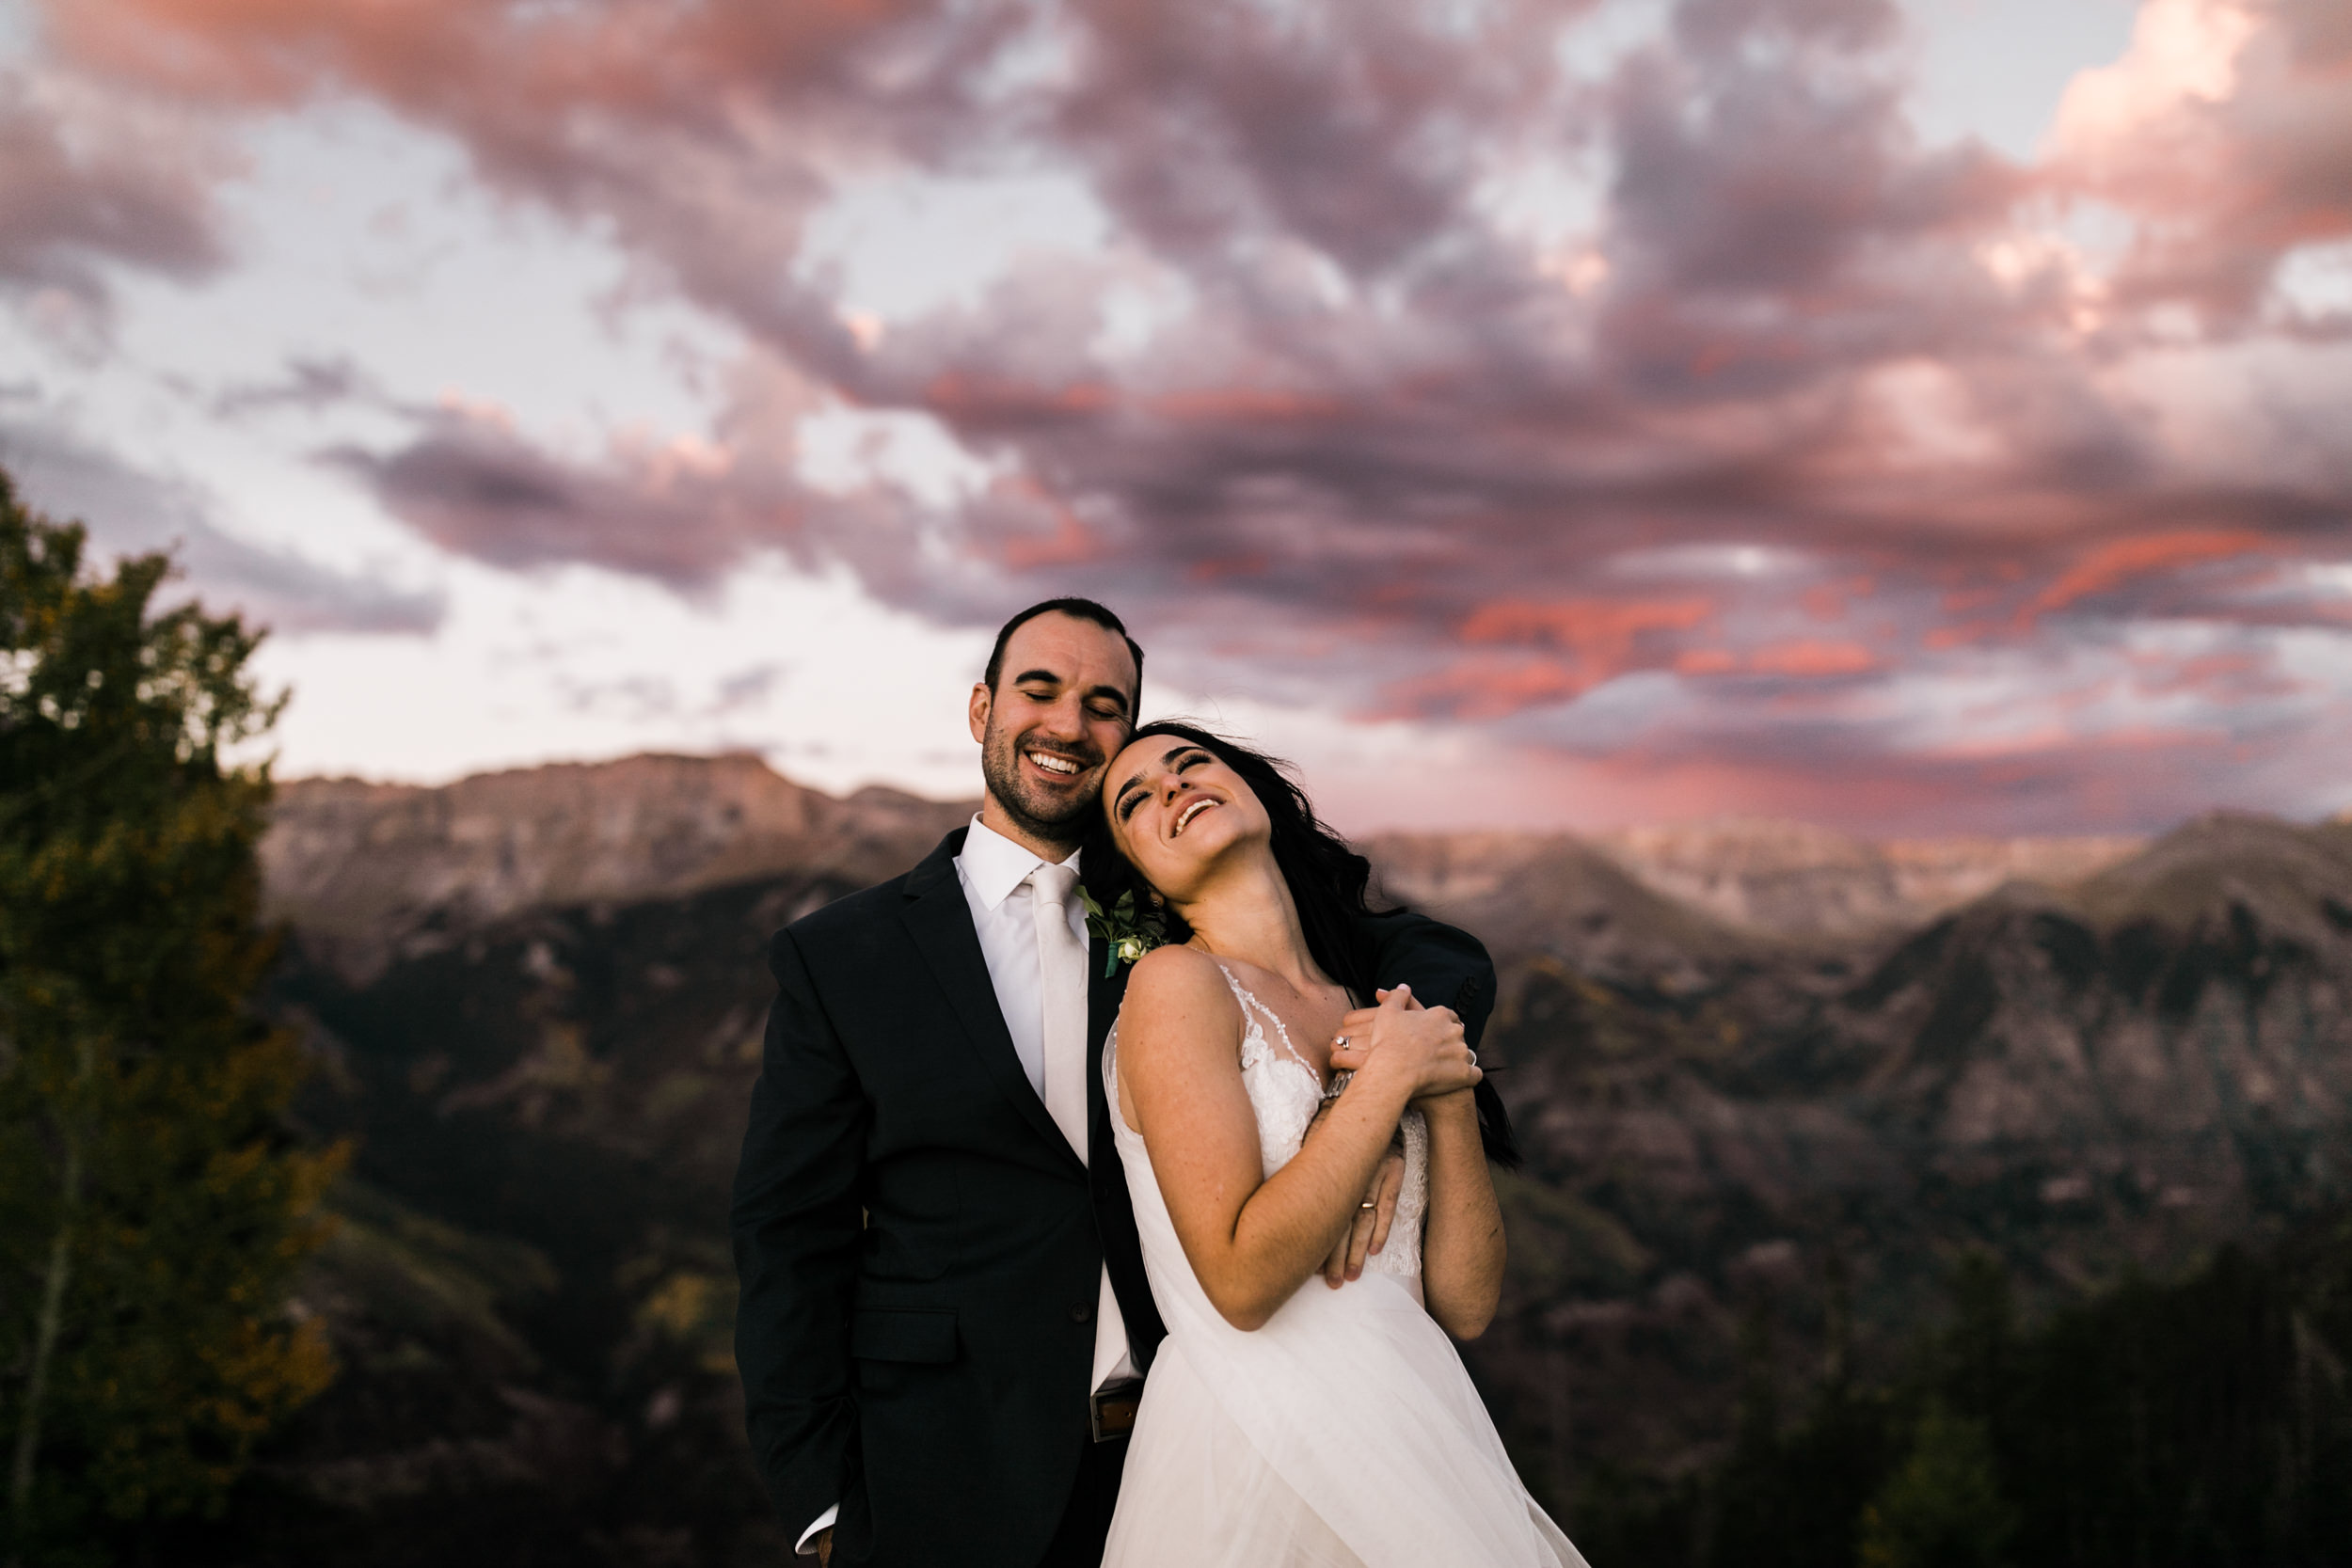 the hearnes adventure photography best of 2018 | Junebug Best of the Best Wedding Photographers | Adventure Elopement Photographer in Moab Utah, Yosemite National Park, and Alaska